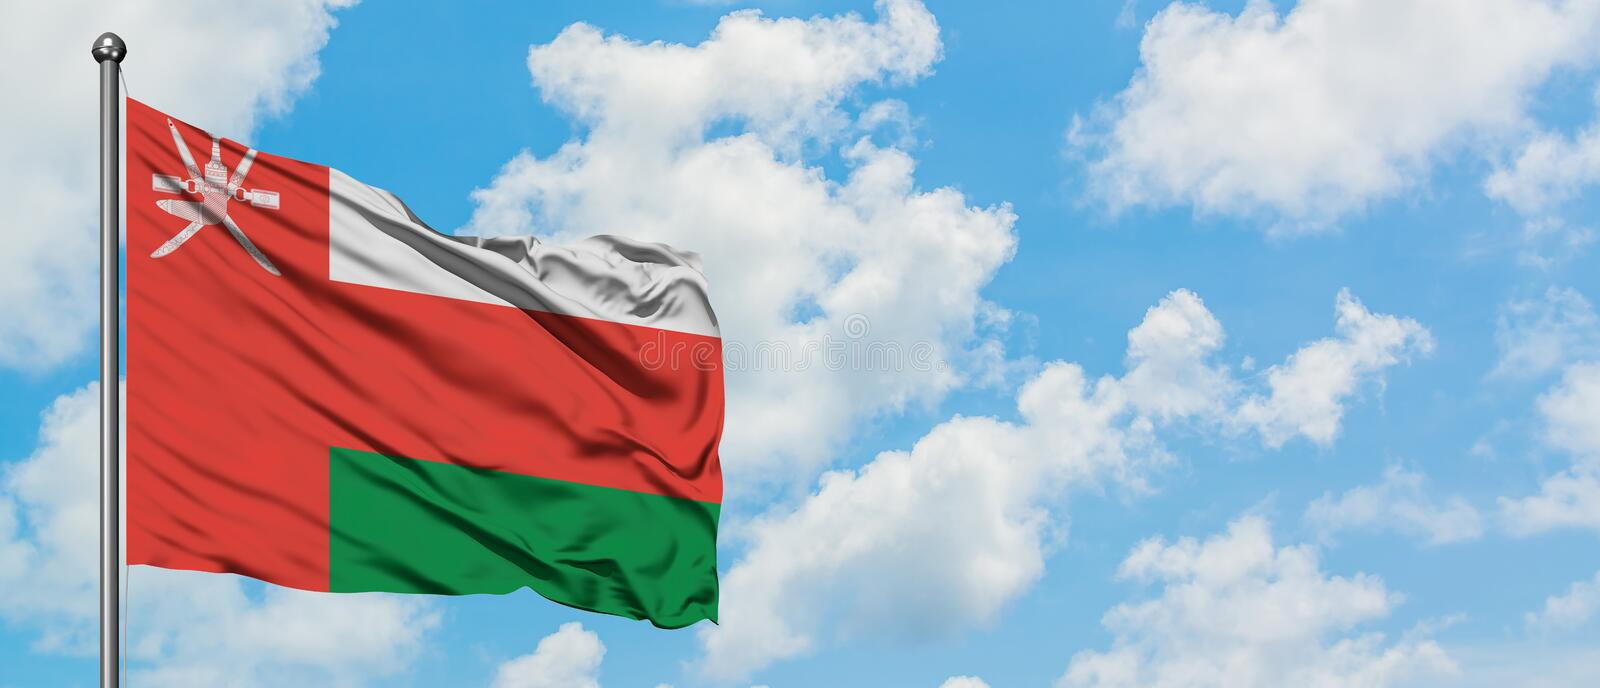 Oman flag waving in the wind against white cloudy blue sky. Diplomacy concept, international relations.  stock photos